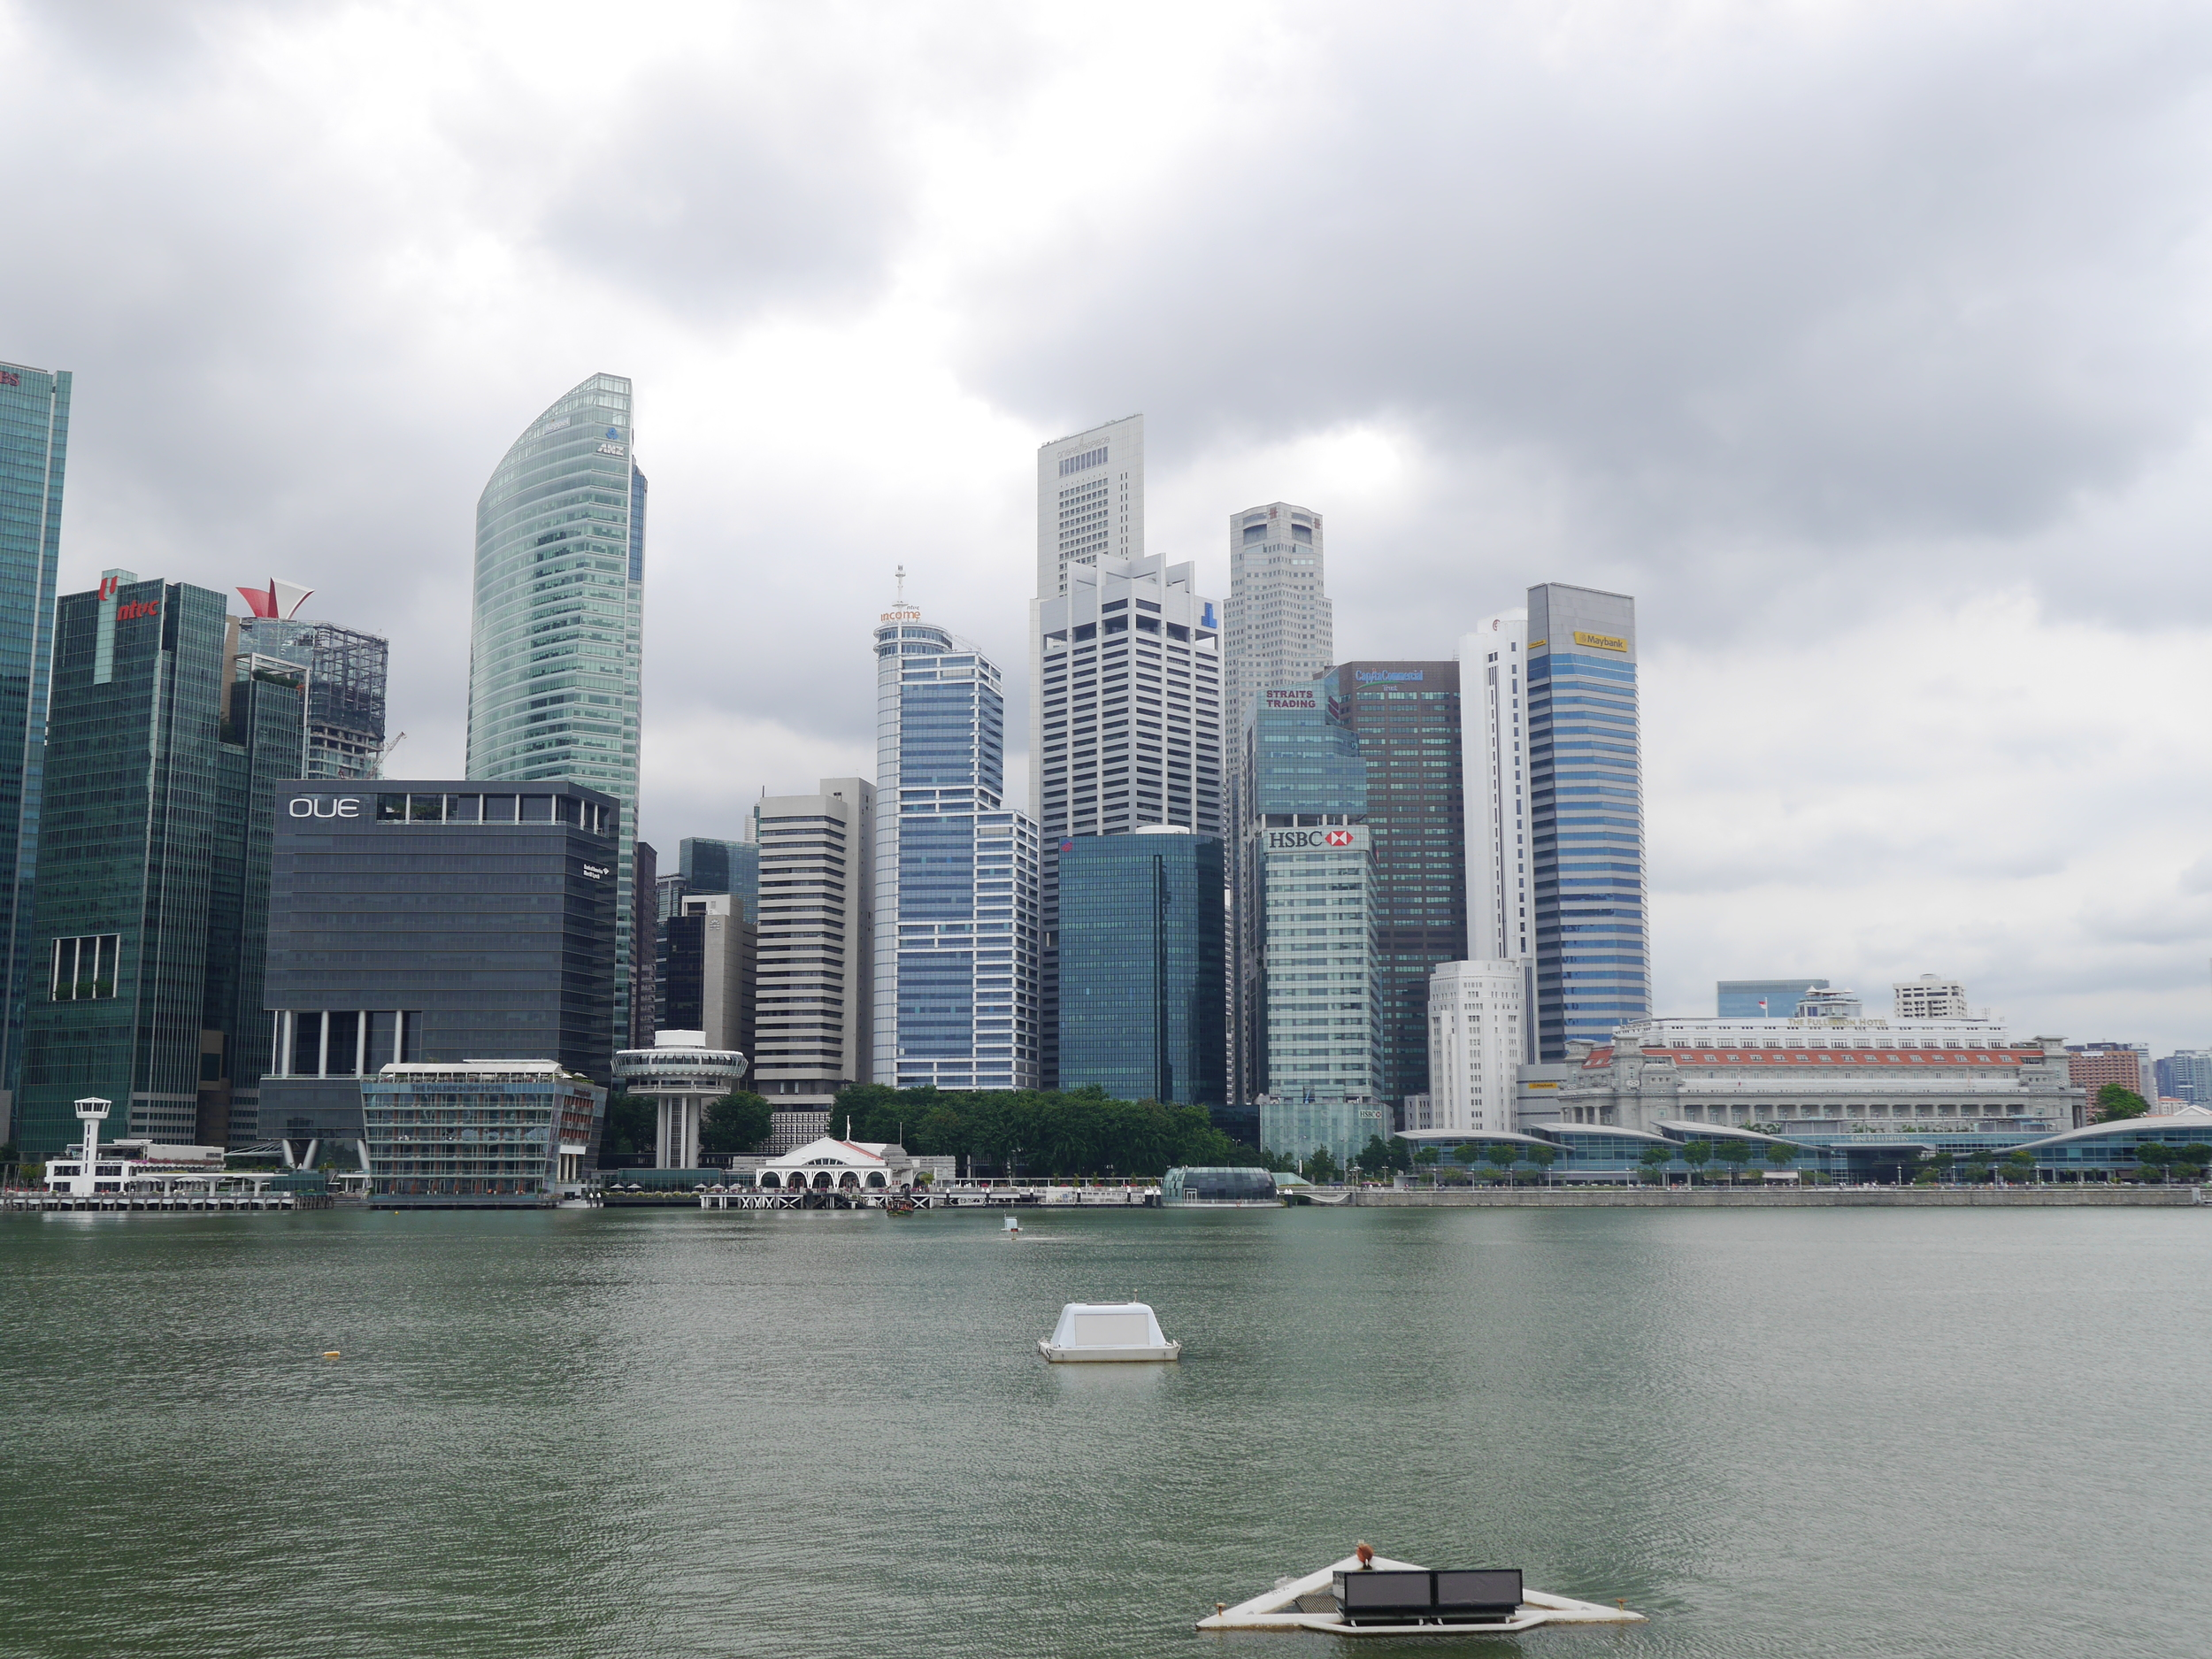 More of the Singapore skyline, including the Fullerton Hotel on the right by the water. Also some strange, air control tower-looking buildings on the left.